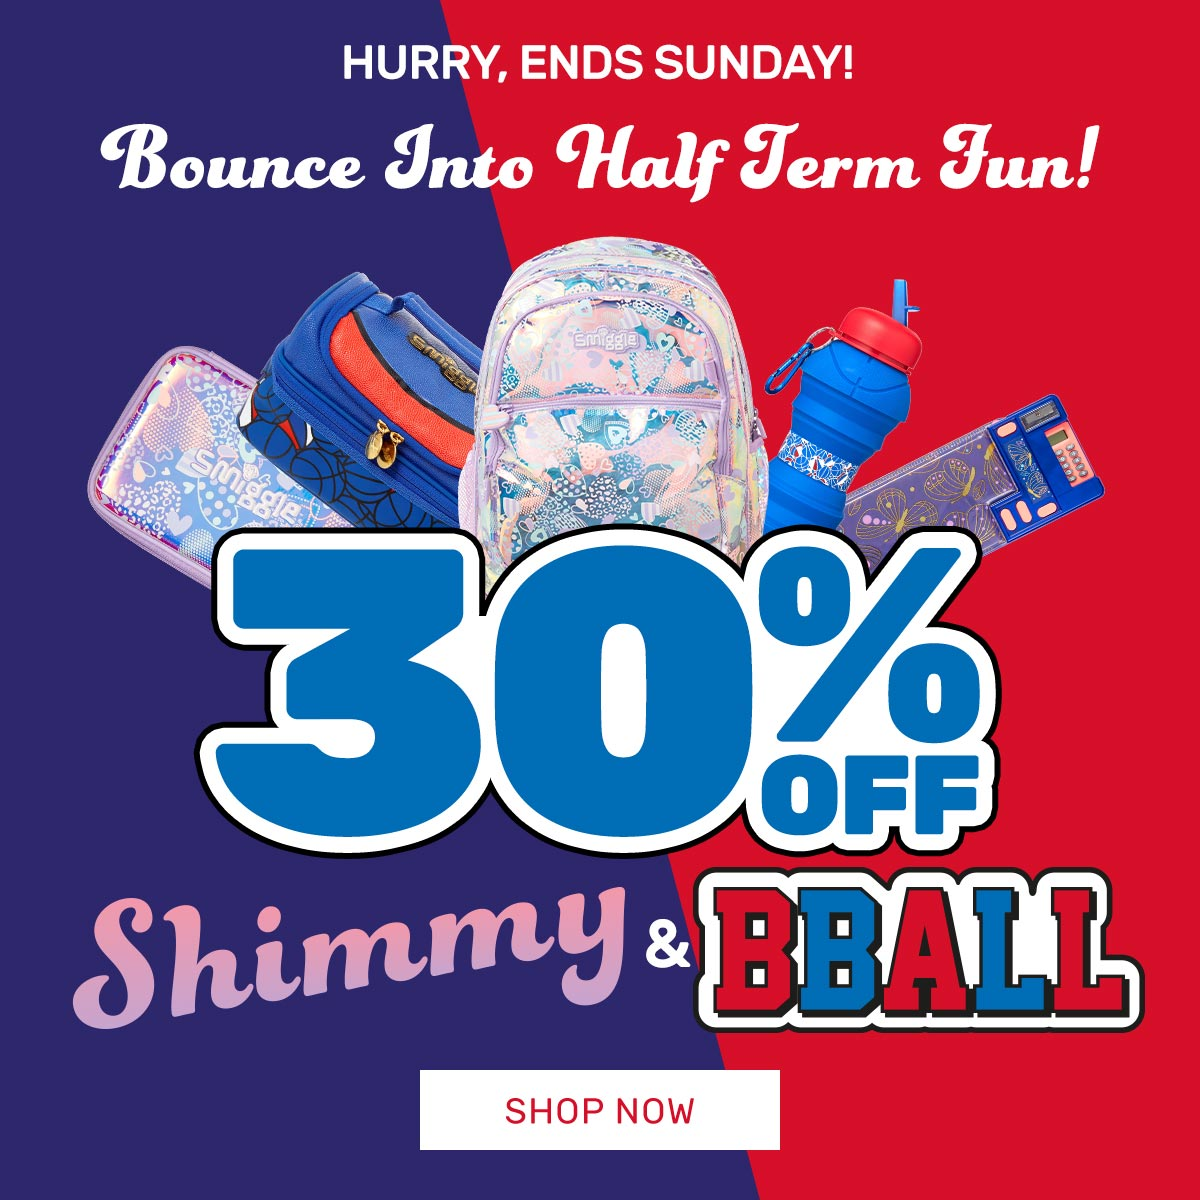 30% OFF Shimmy & Bball